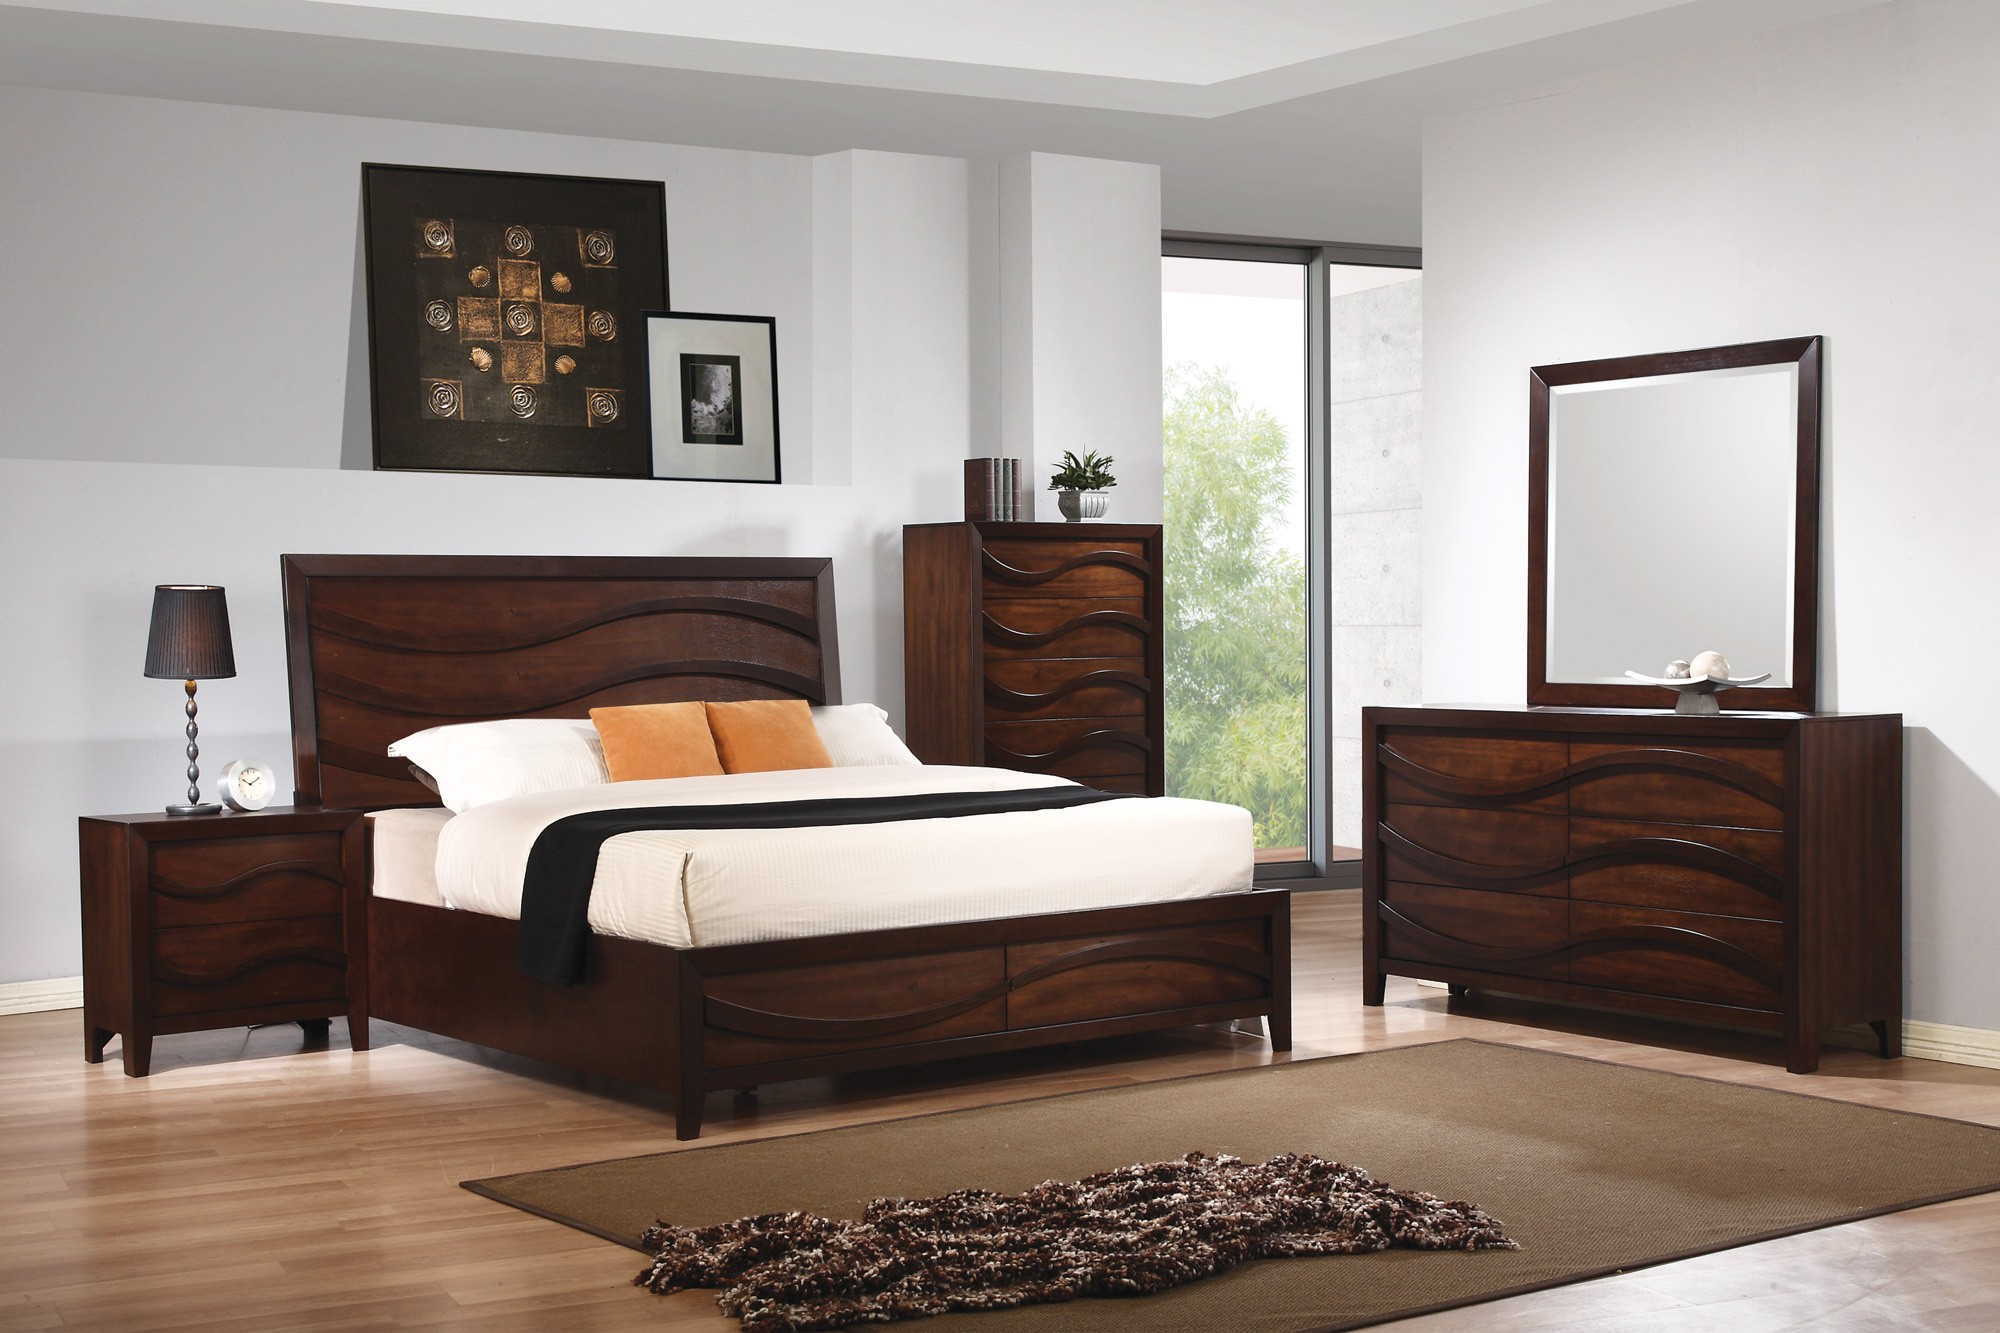 Loncar java oak bedroom set 203101q coaster furniture for Bedroom furniture places